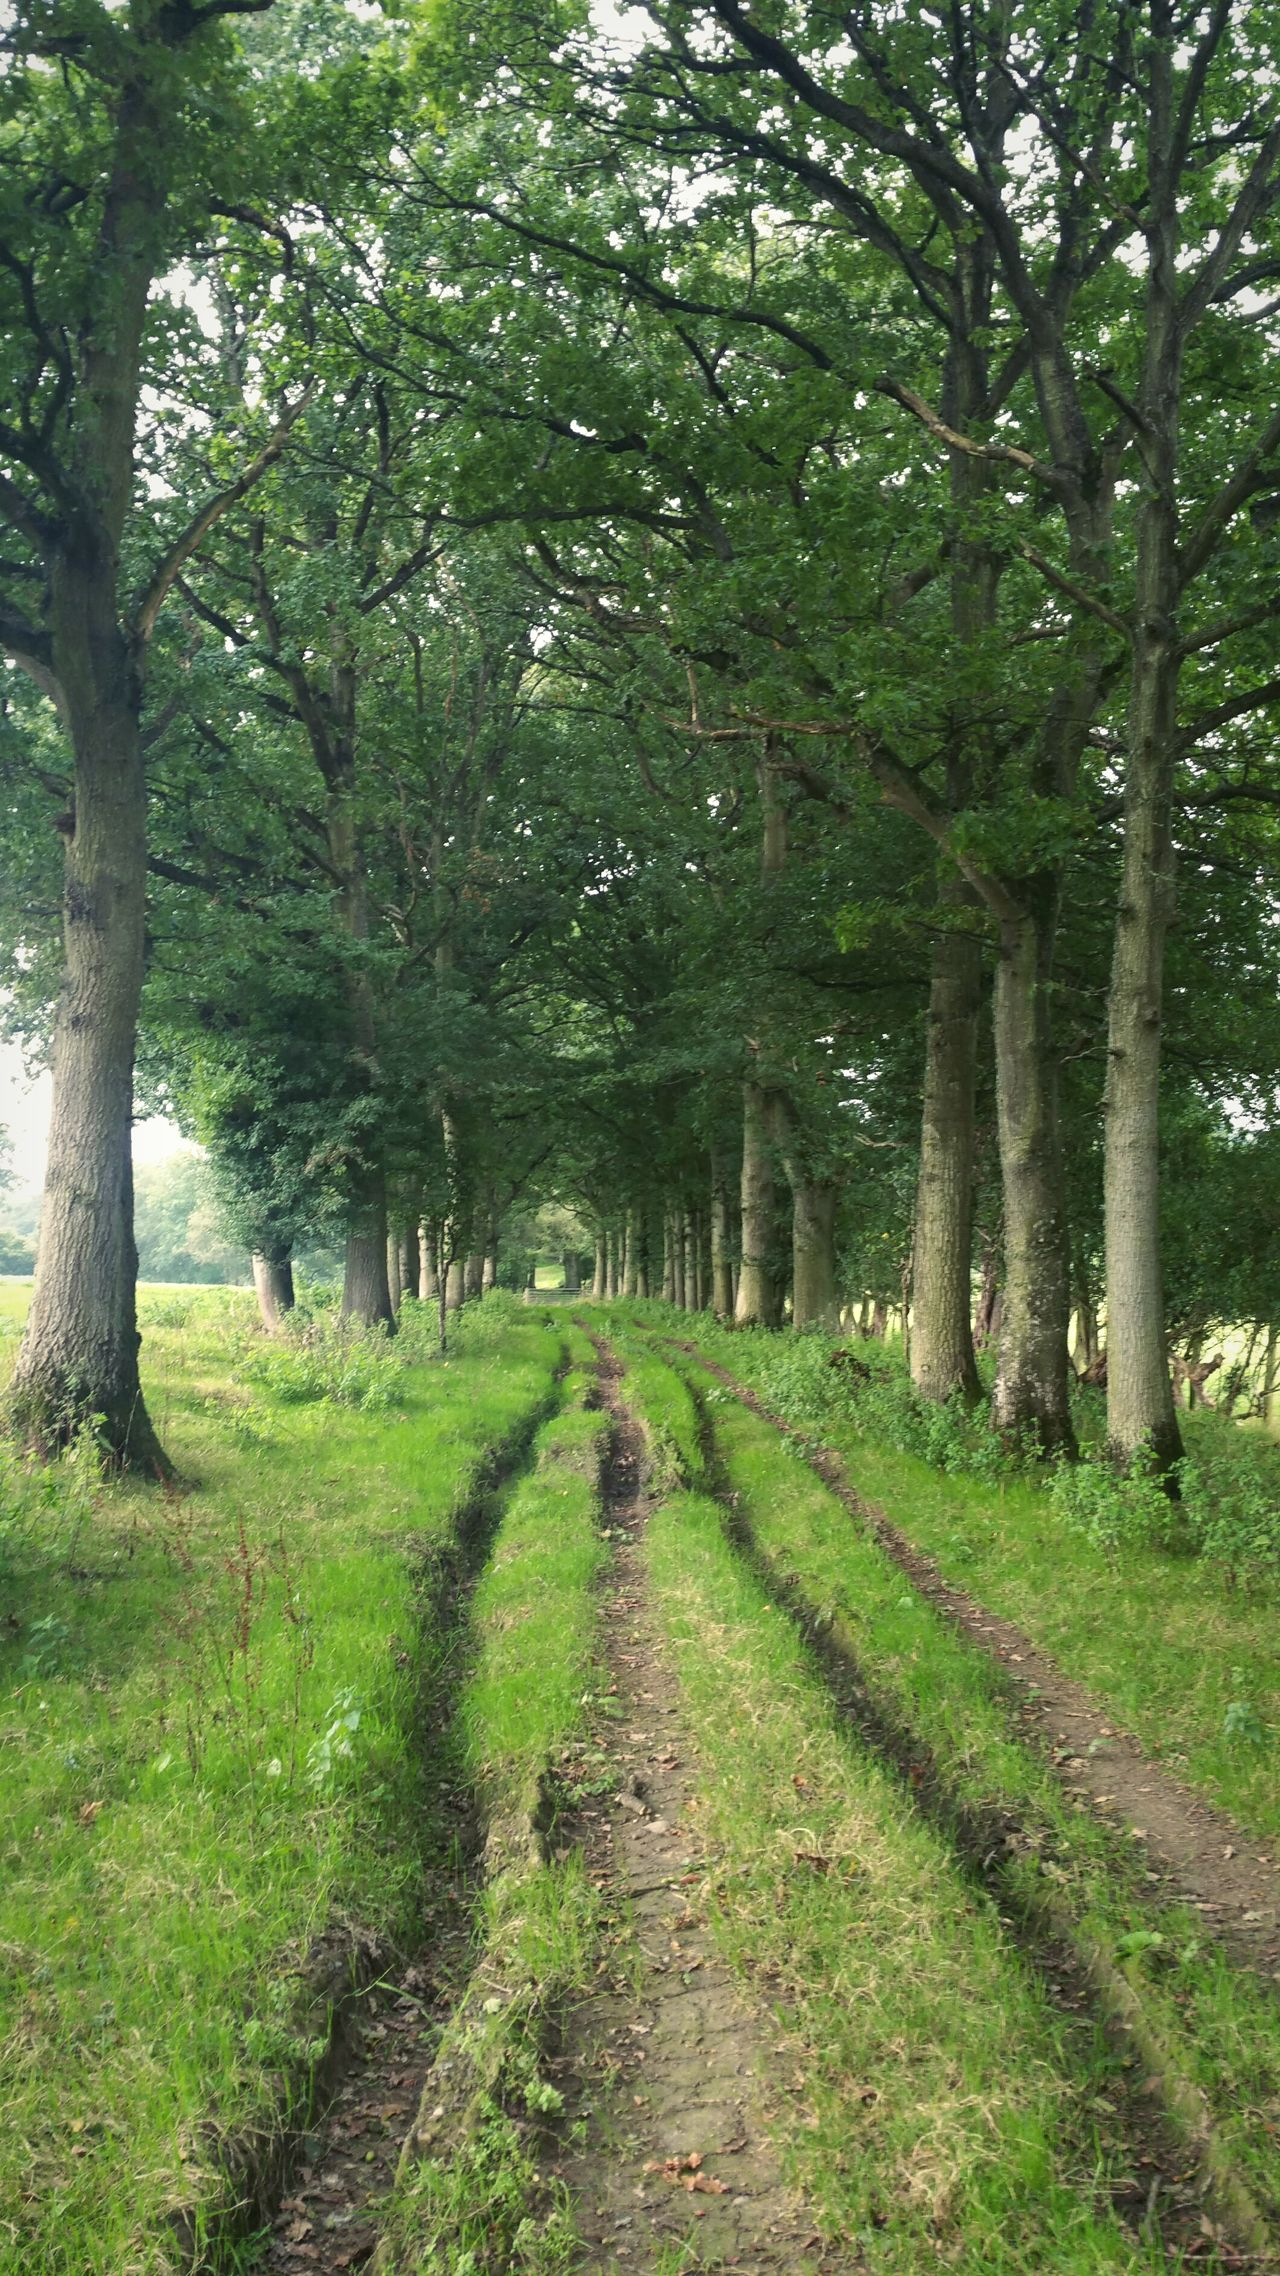 ... an Alley ... Tree Green Color Grass Growth Nature Outdoors Tranquility The Way Forward Tranquil Scene No People Landscape Scenics Beauty In Nature Day Countryside Rural Wales Powys Lush Vegetation Trees Lane Country Lane